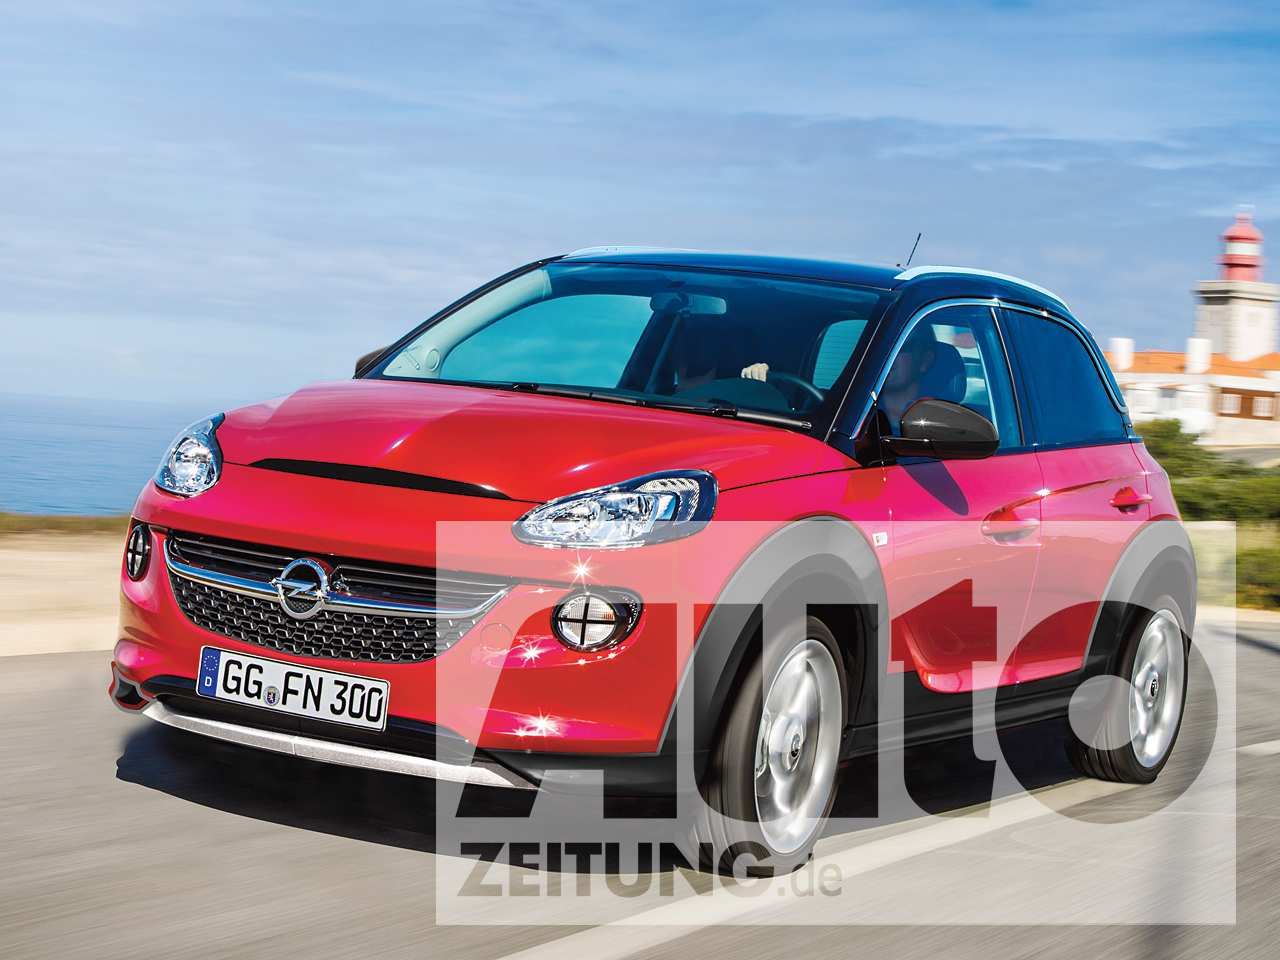 43 New Opel Karl 2020 Exterior And Interior